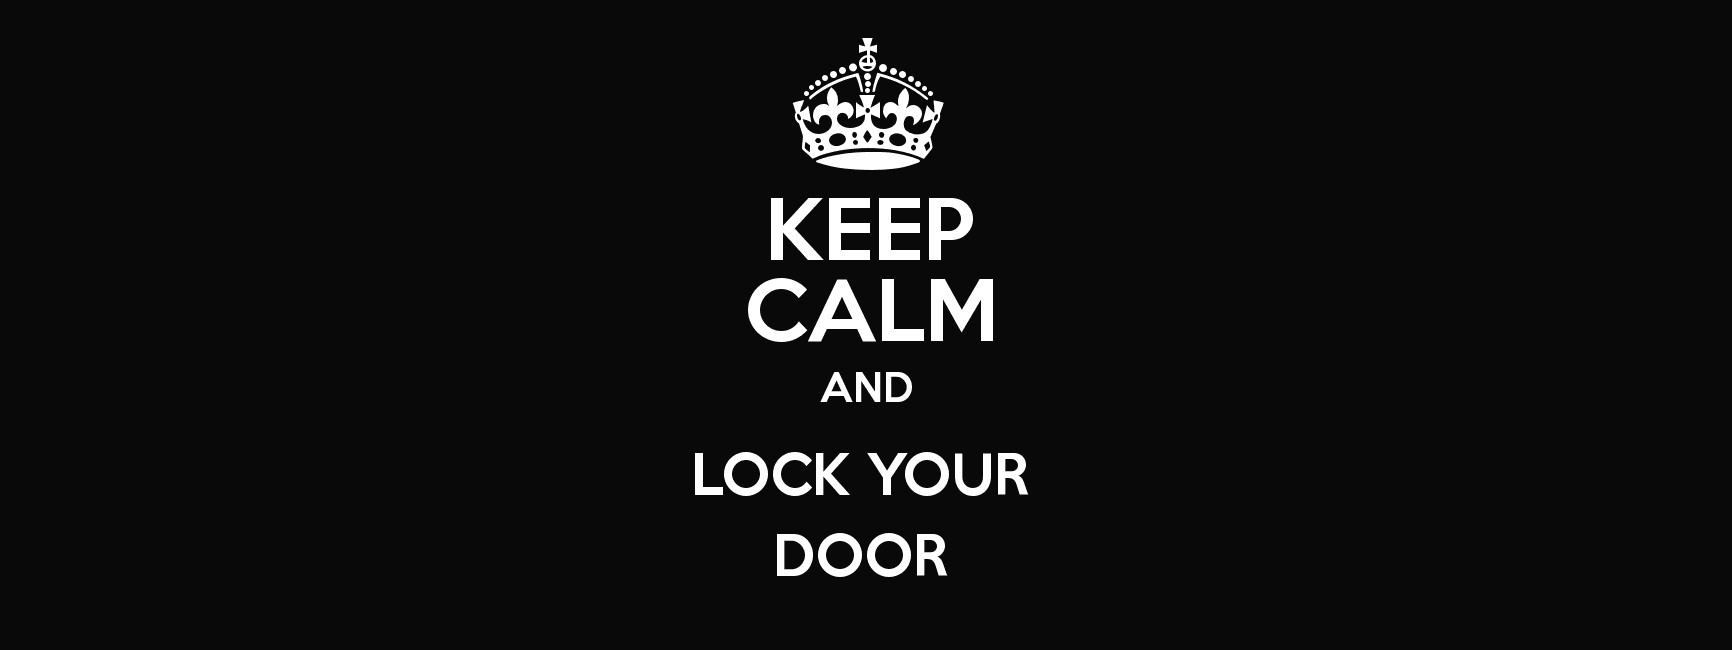 Lock your door Home Keep Calm And Lock Your Door Poster Elephant Alarm System Keep Calm And Lock Your Door Keep Calm And Posters Generator